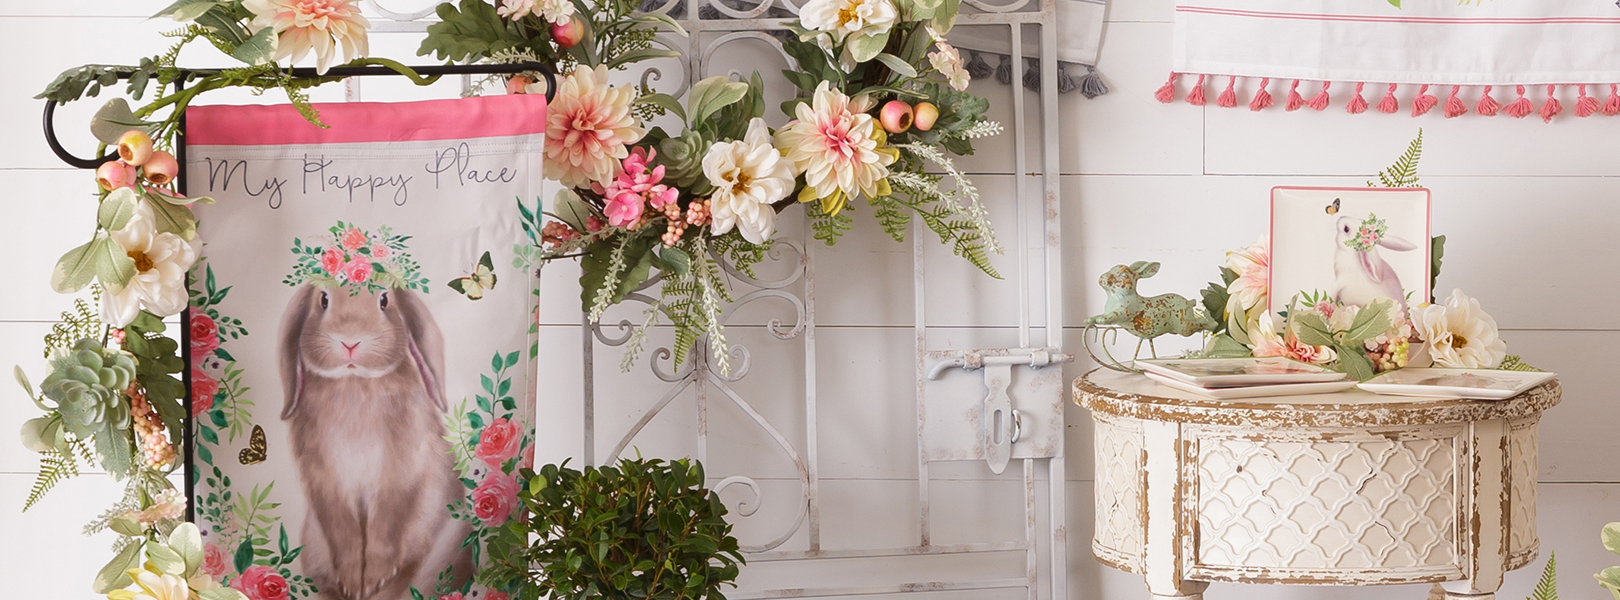 Flower Home Marketplace